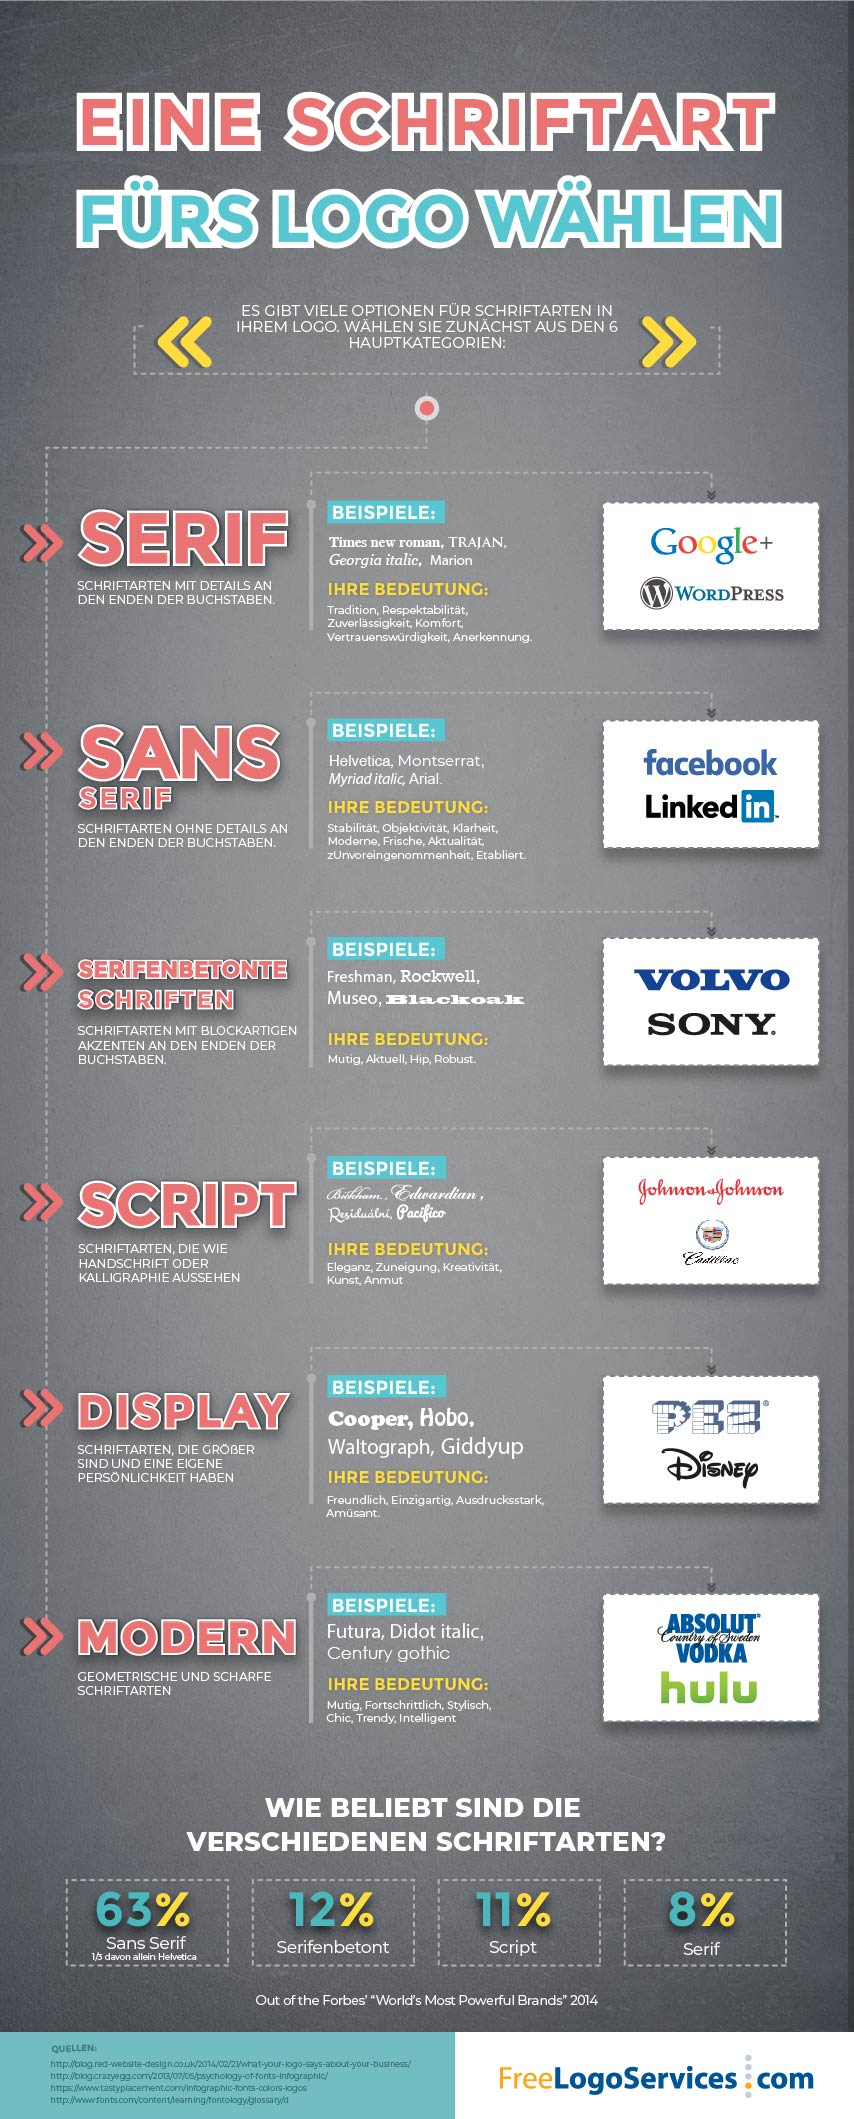 infographic showing the varieties of font types such as serif and modern